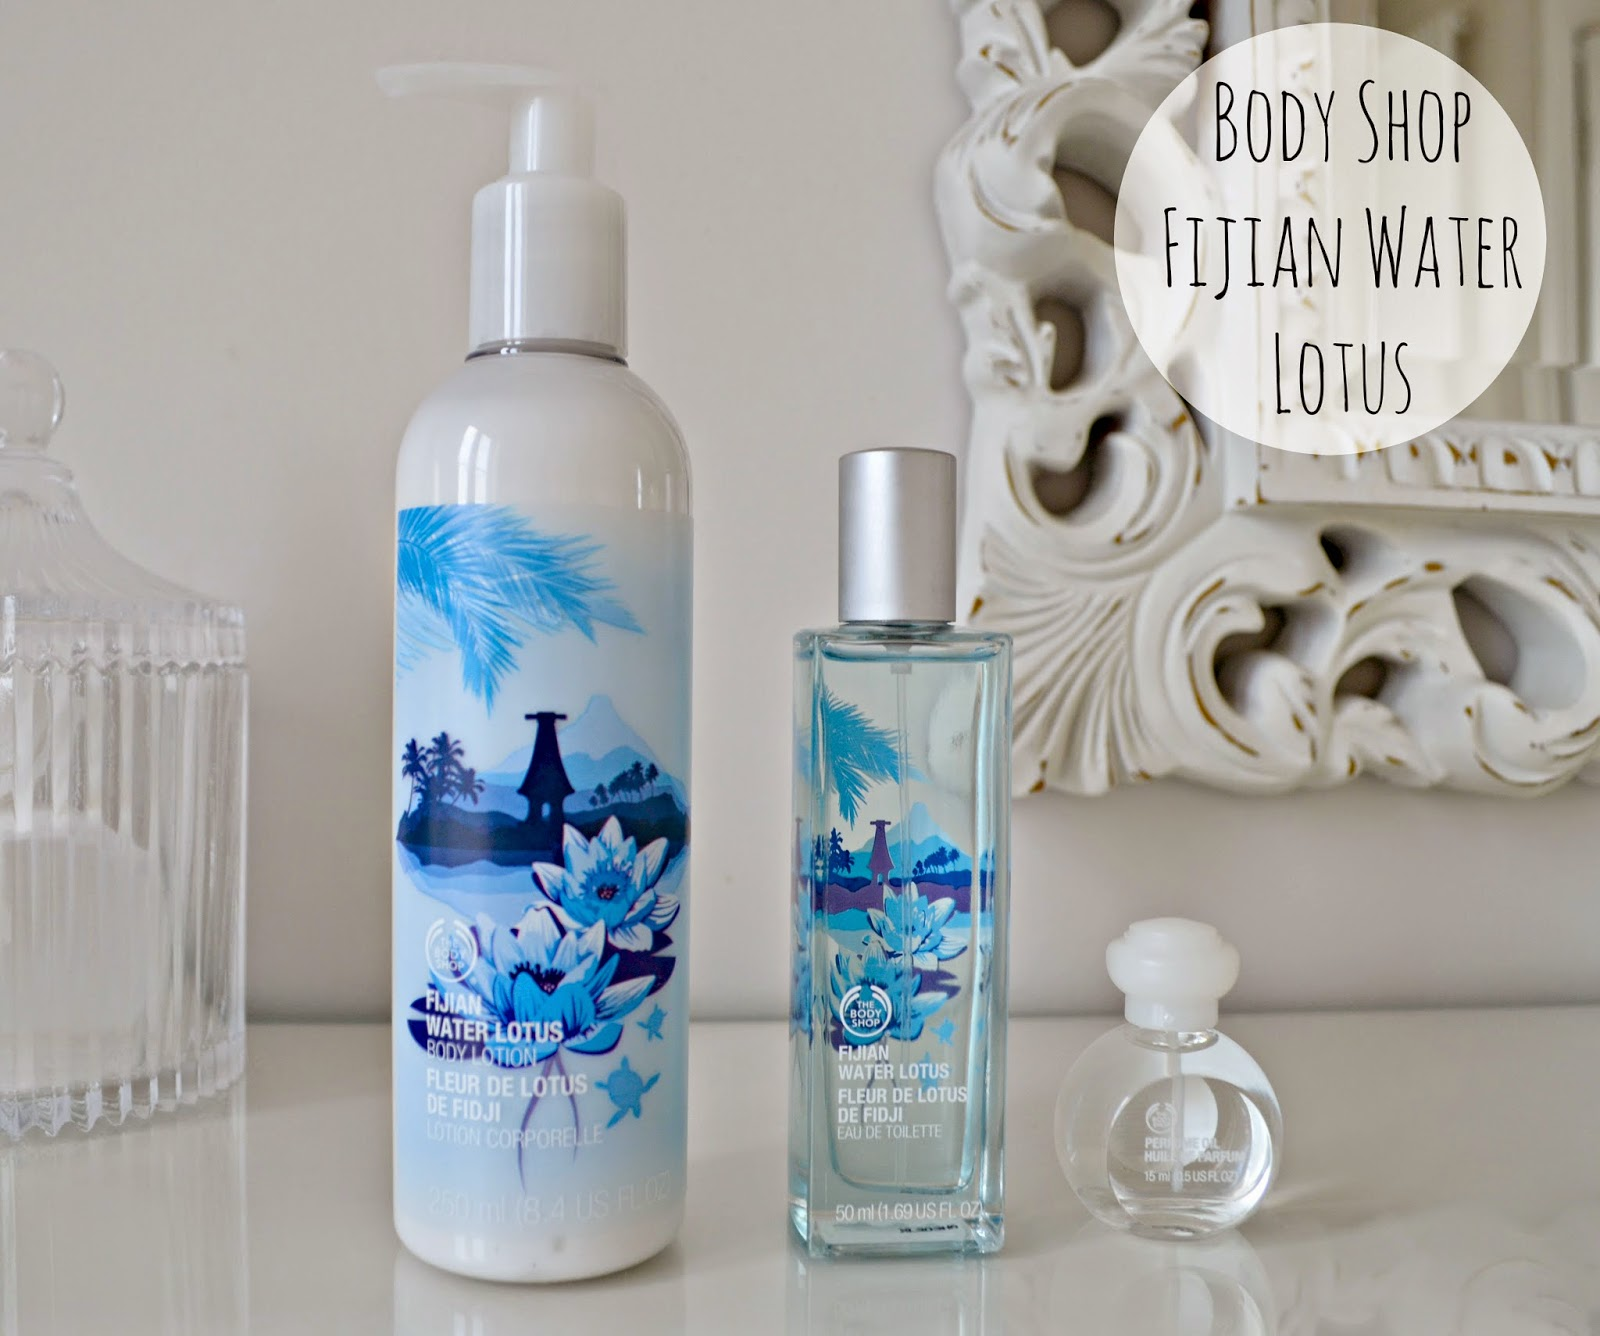 Bodyshop Fijian Water Lotus